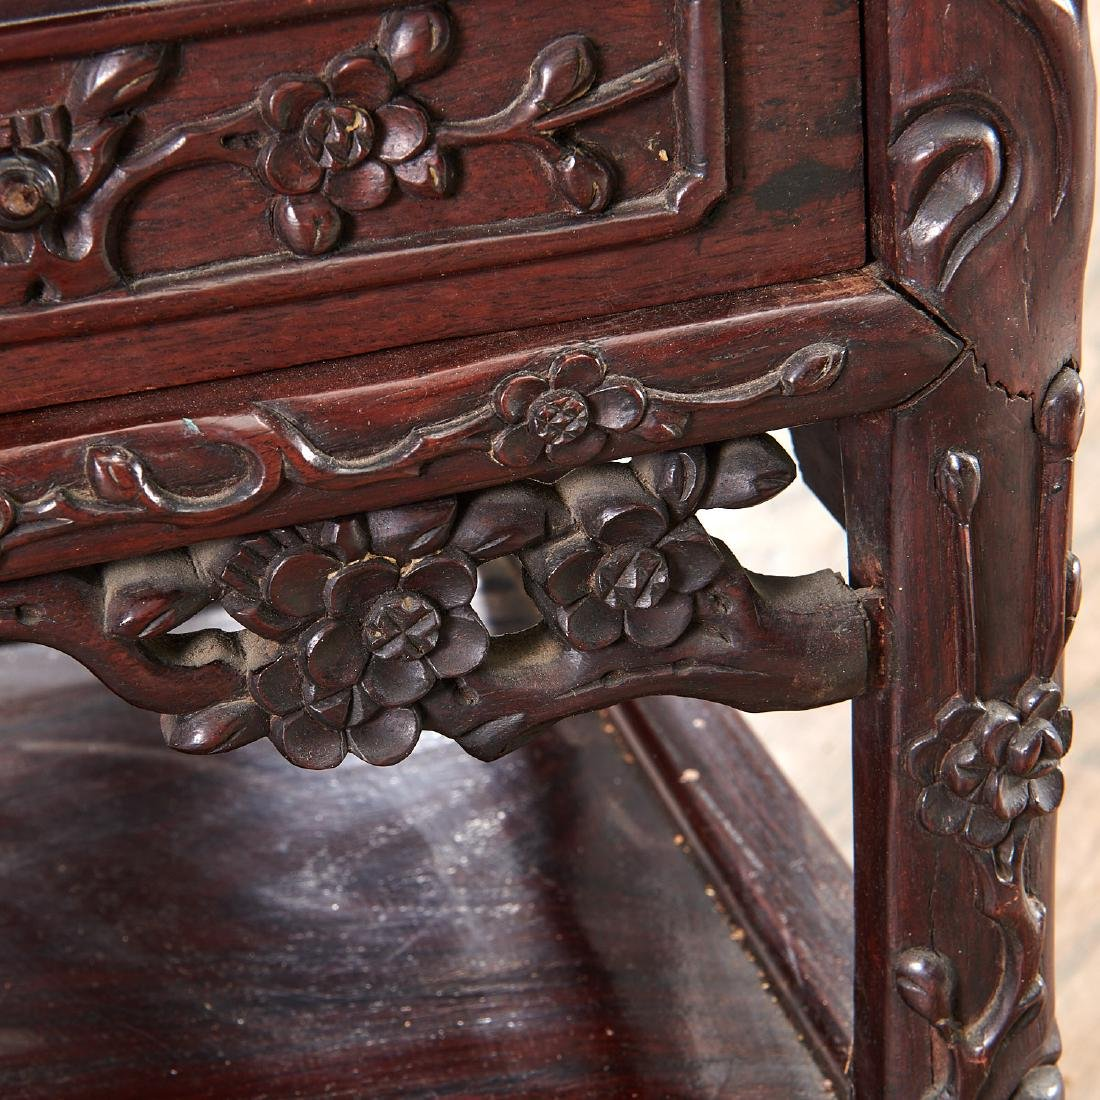 Fine Chinese Export carved hardwood two-part desk - 10